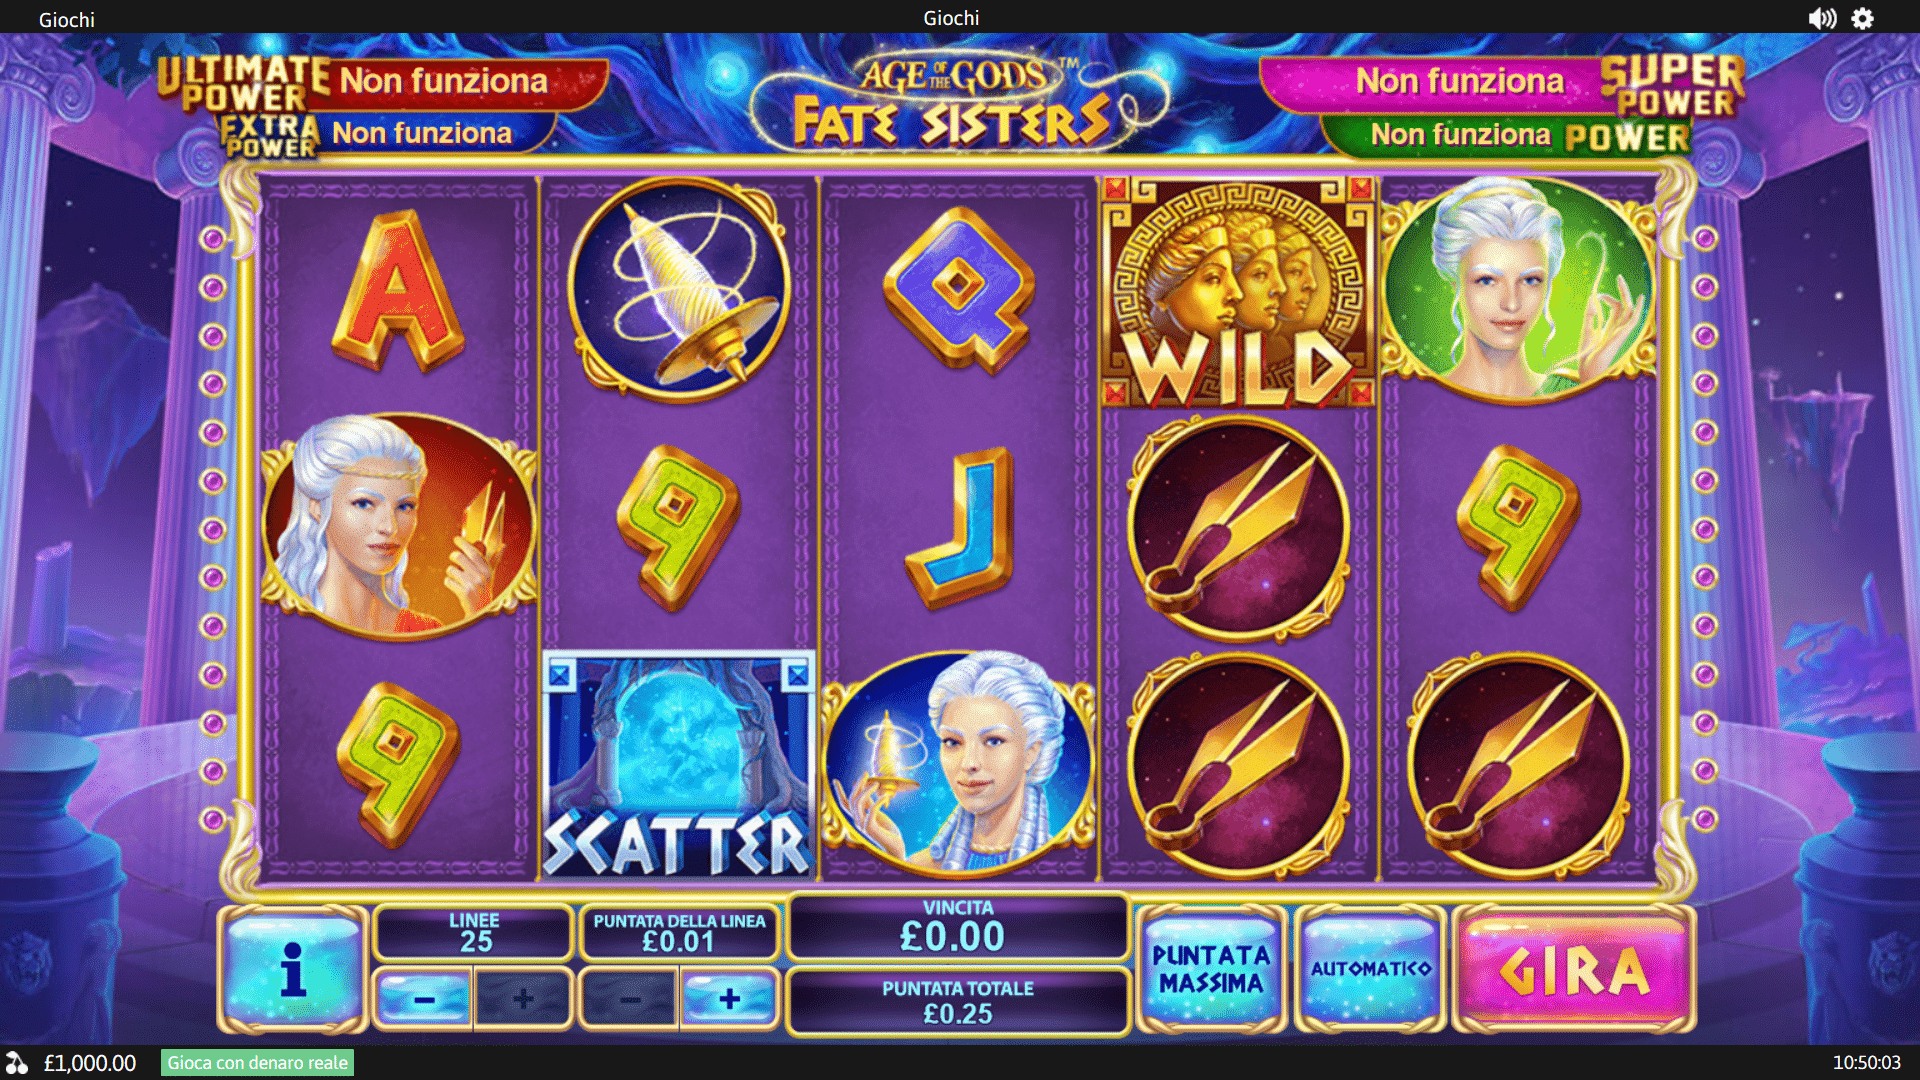 Slot Age of the Gods – Fate Sister